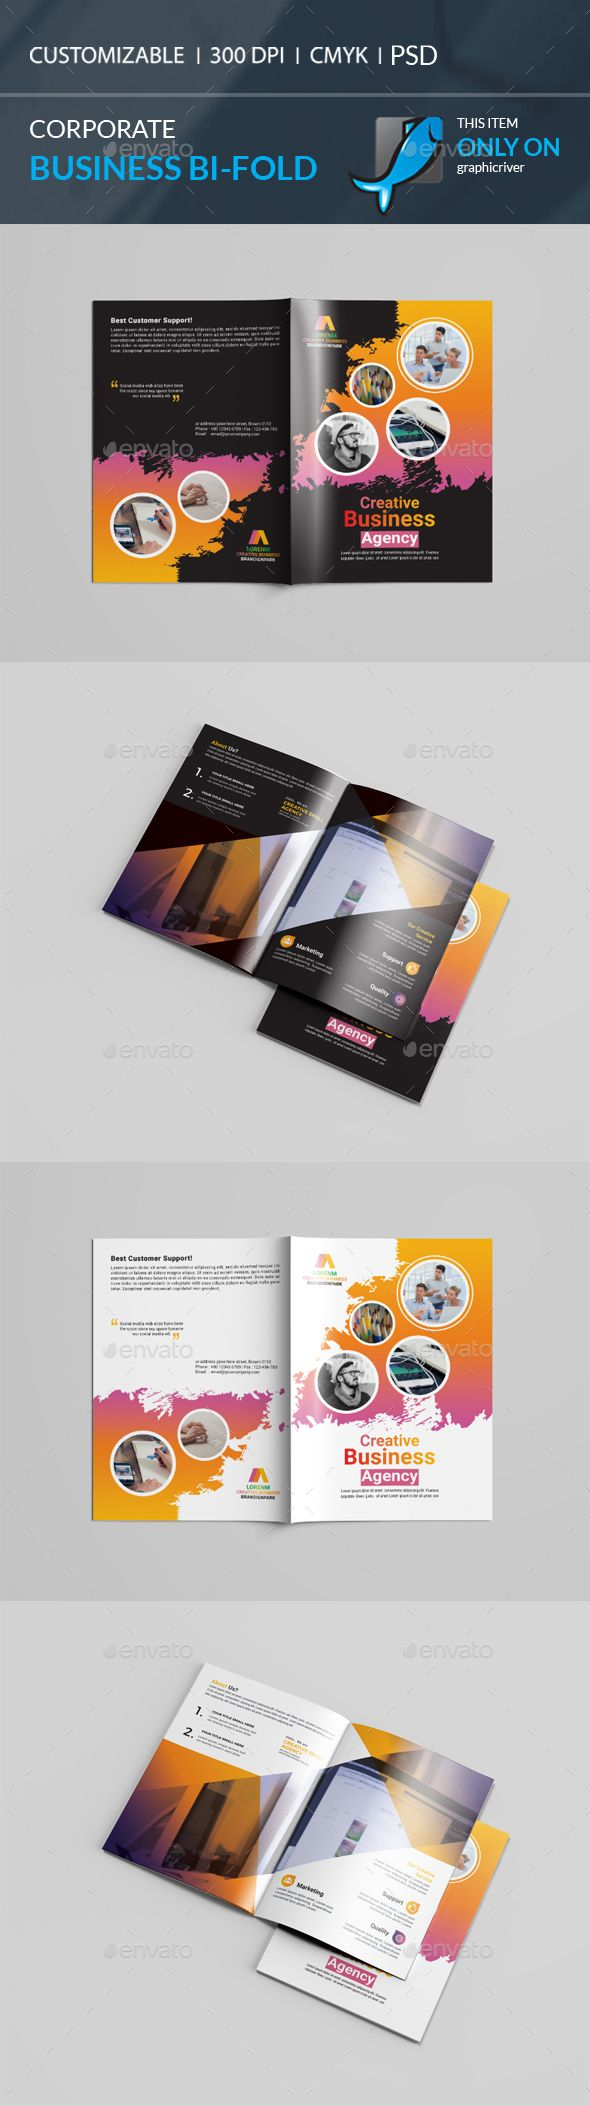 bi fold brochure template psd brochure templates pinterest